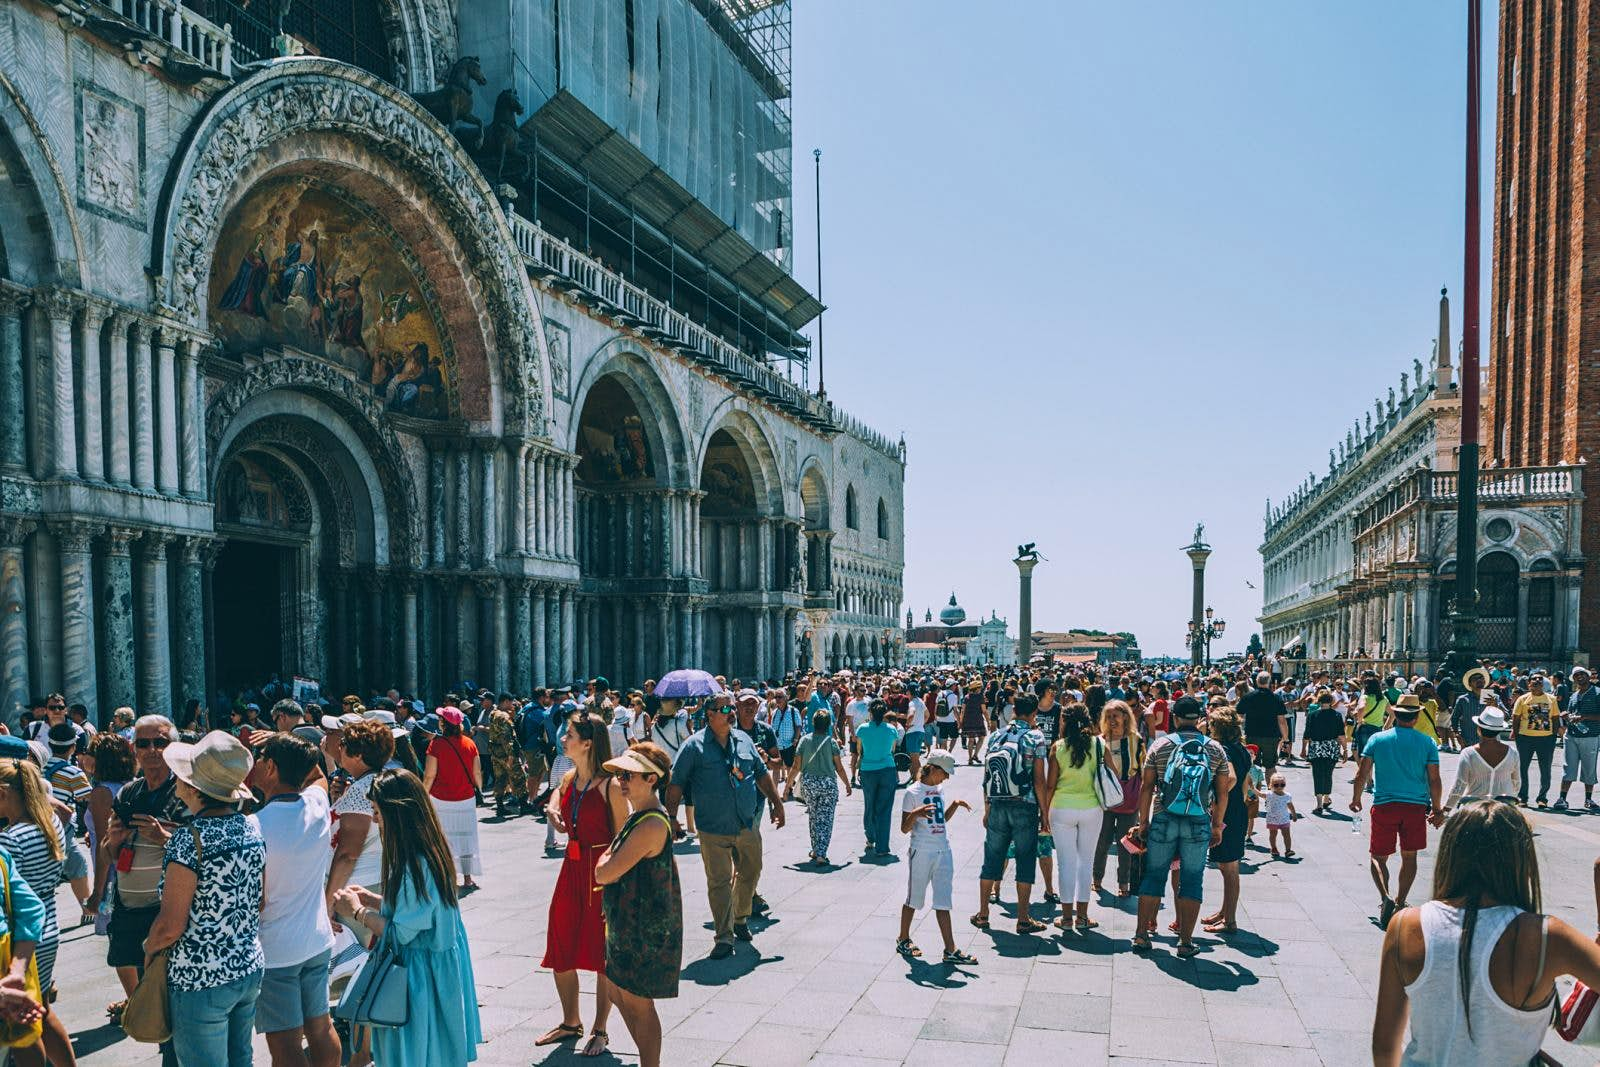 A shot of colourful tourist crowds in the streets of Venice